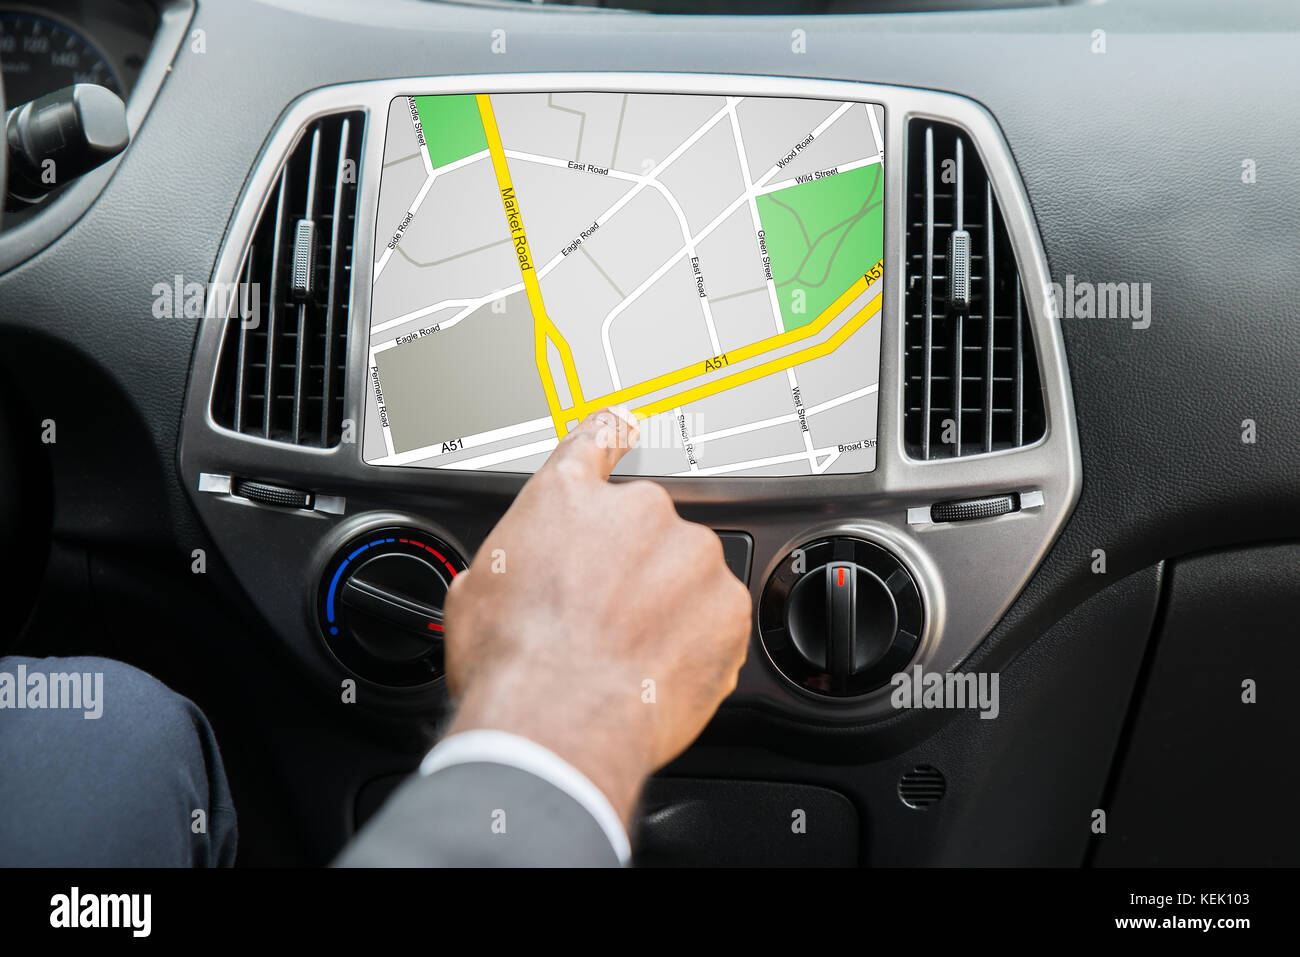 Close-up Of Person's Hand Using GPS Navigation System In Car Stock Photo